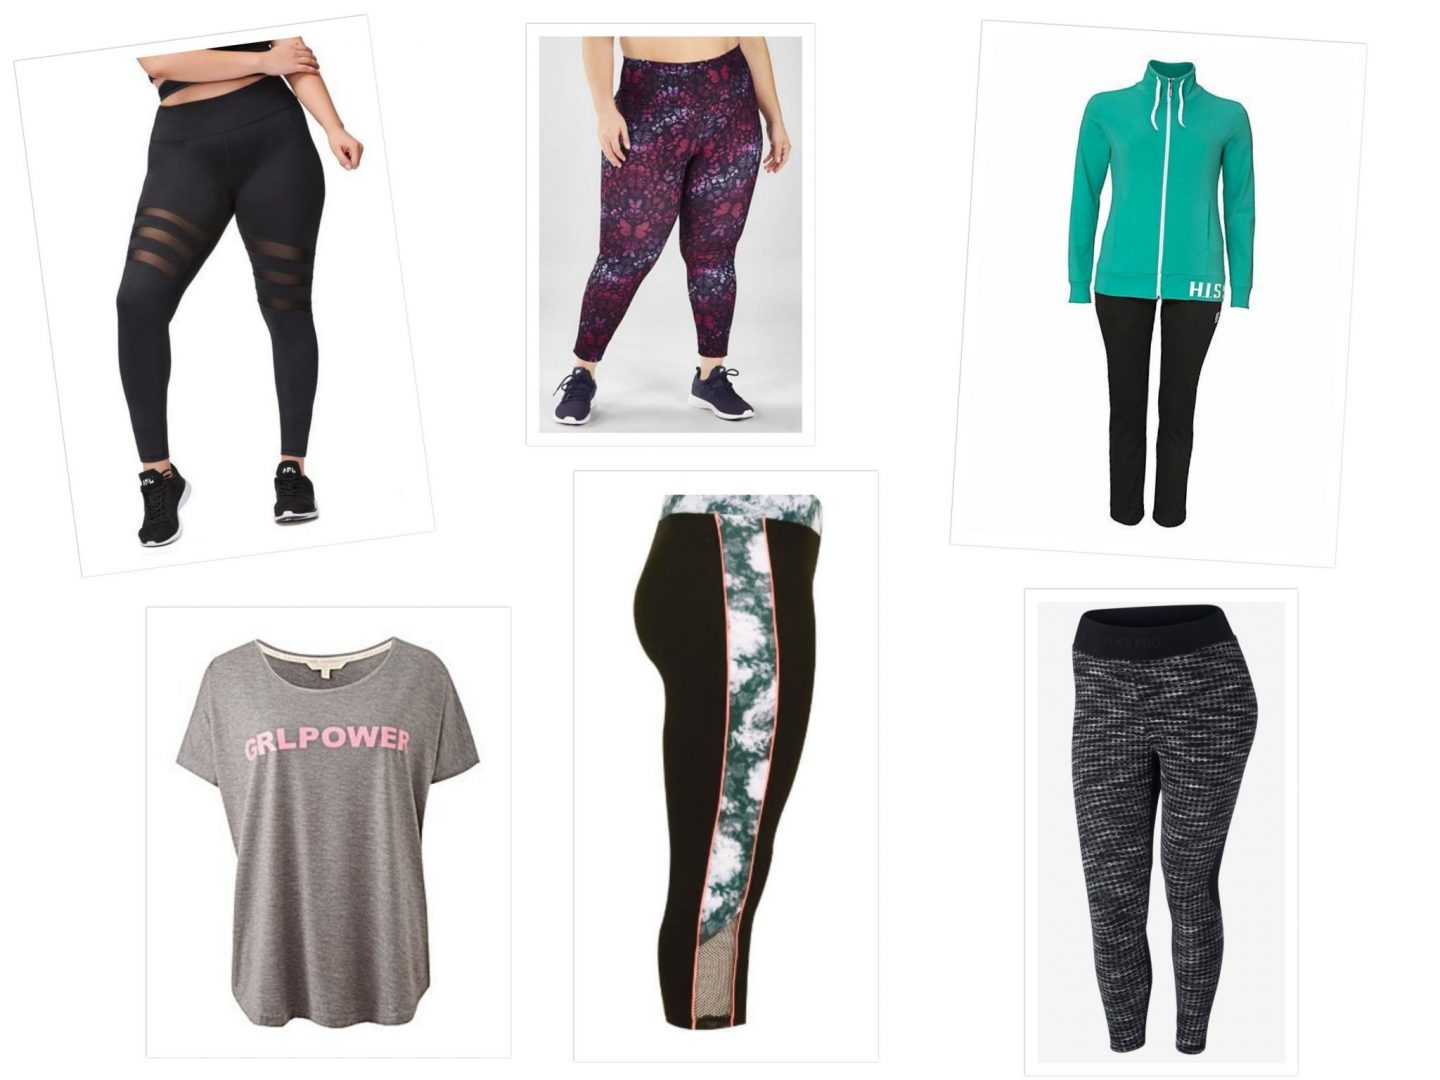 d166d98f209ac PLUS-SIZE LEGGINGS   GYM WEAR - A Life With Frills